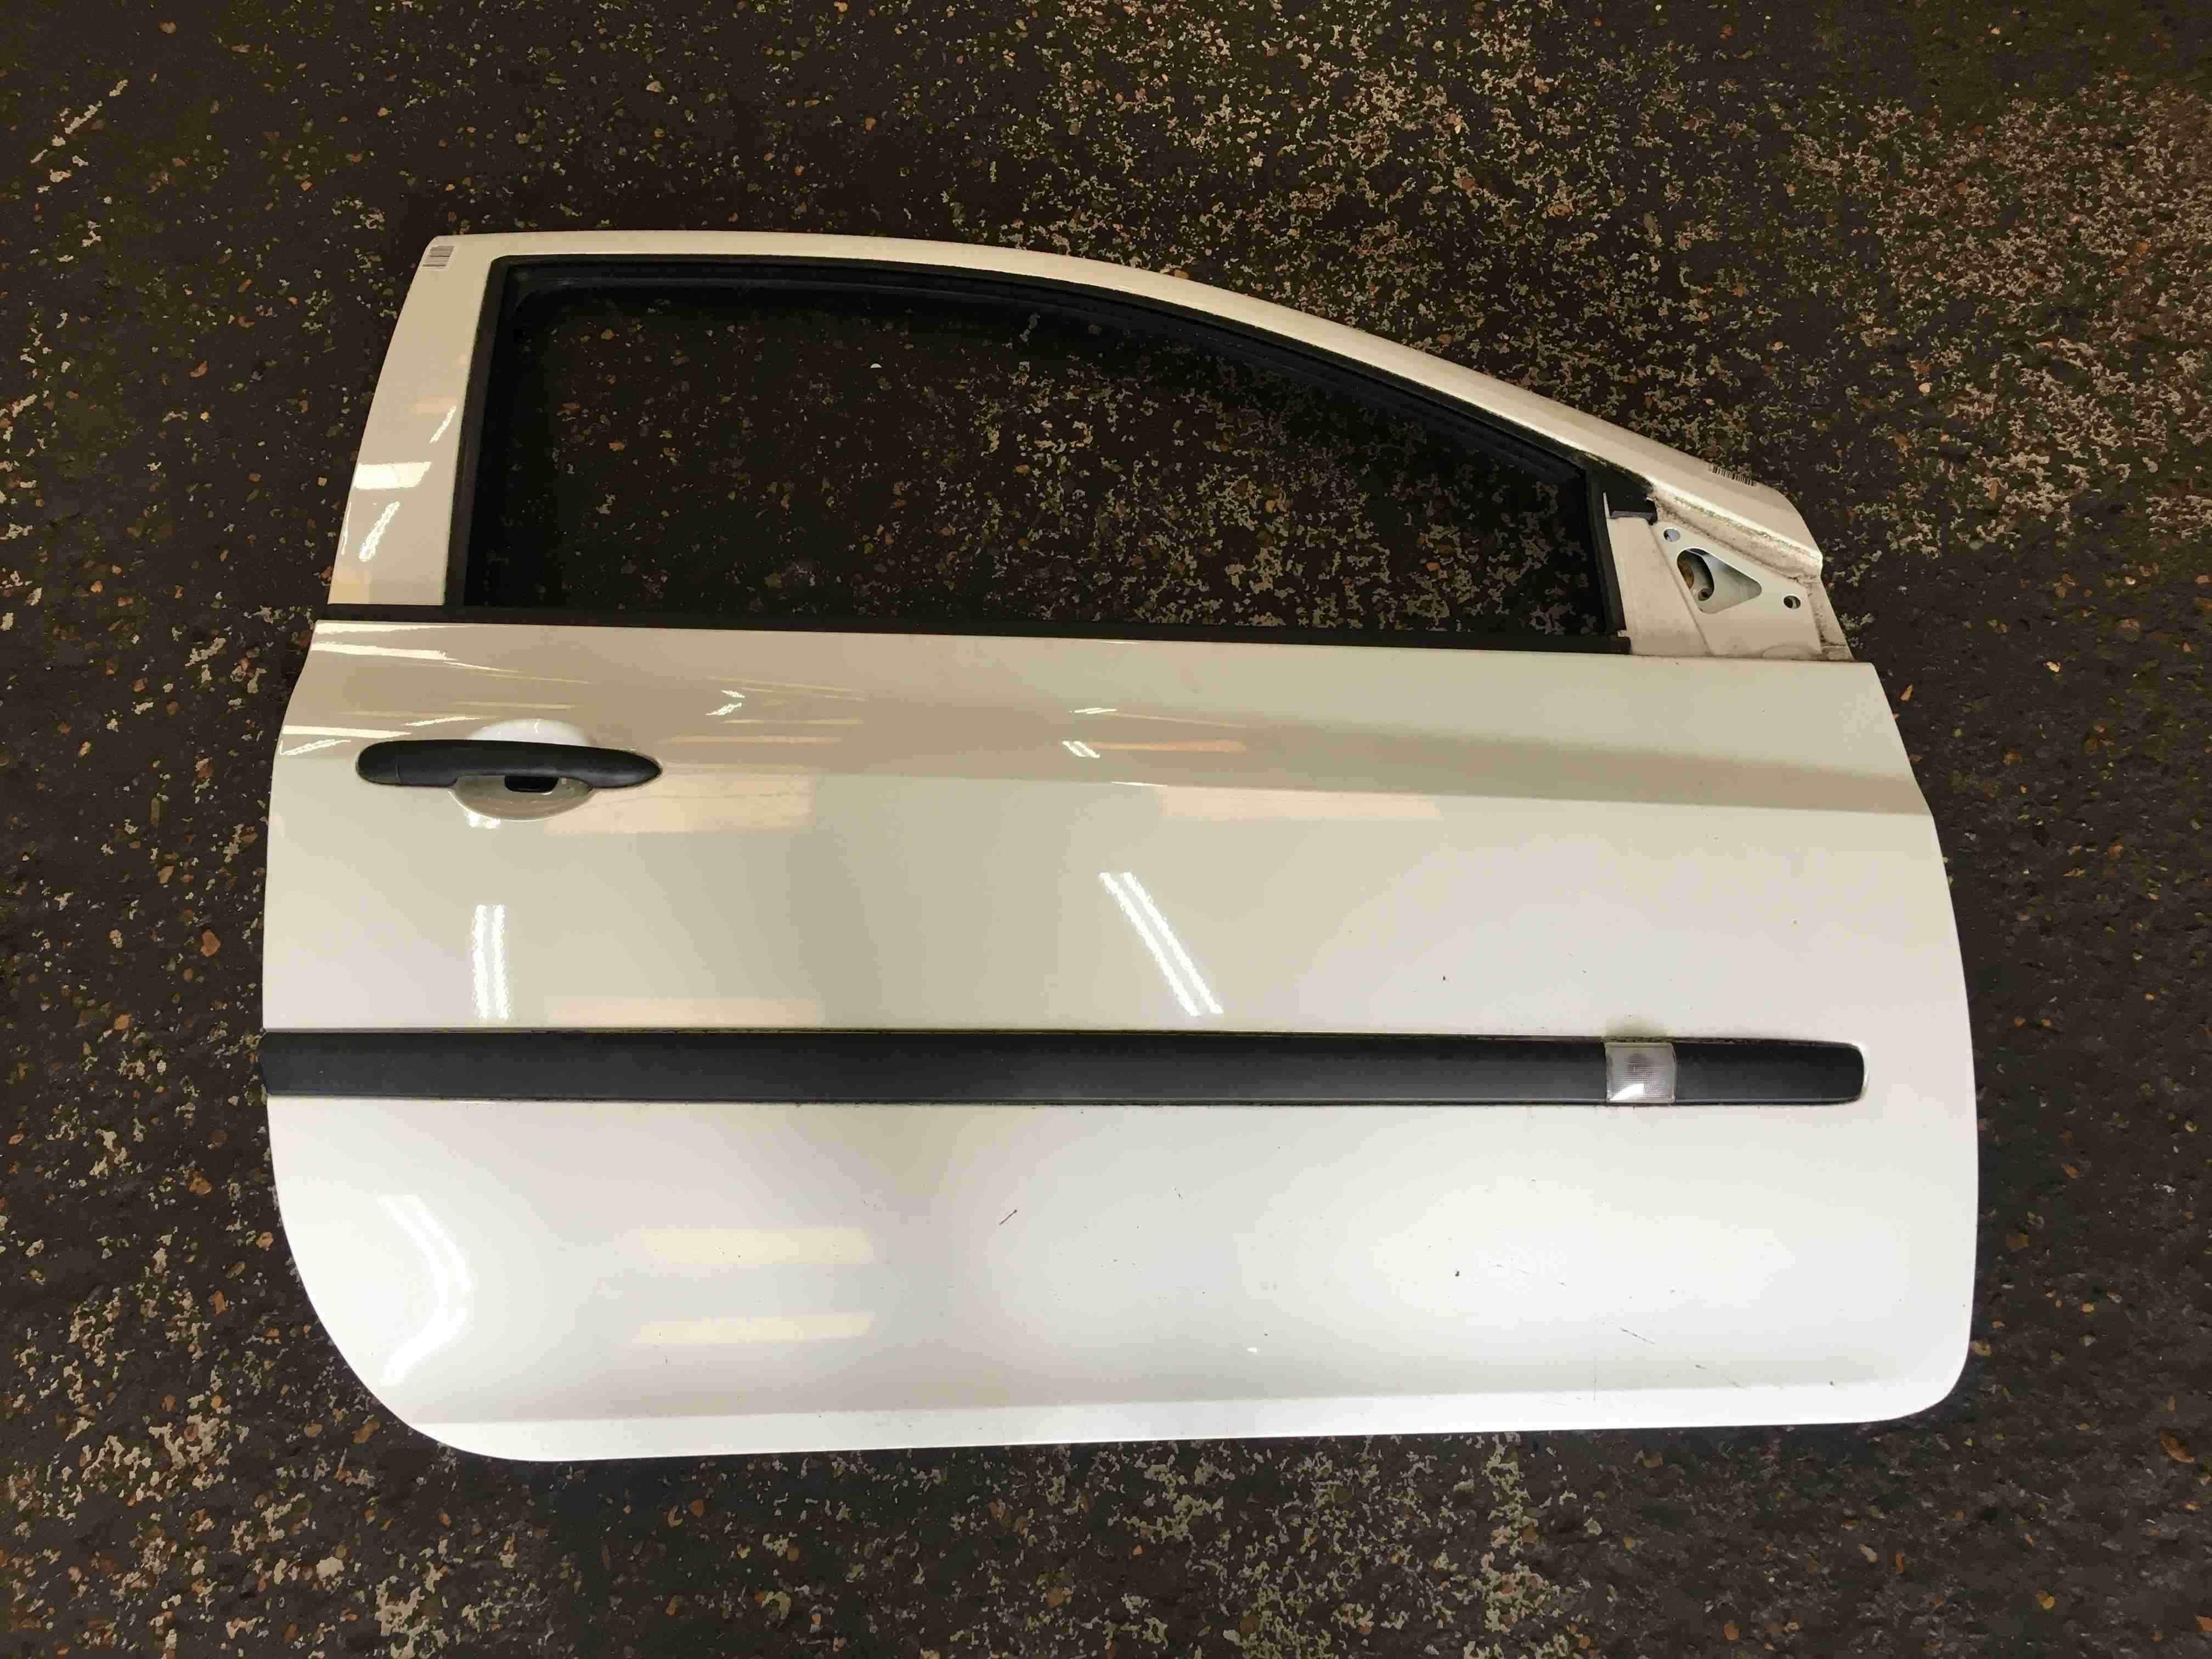 Renault Clio MK3 2005-2012 Drivers OSF Front Door White OV369 3dr